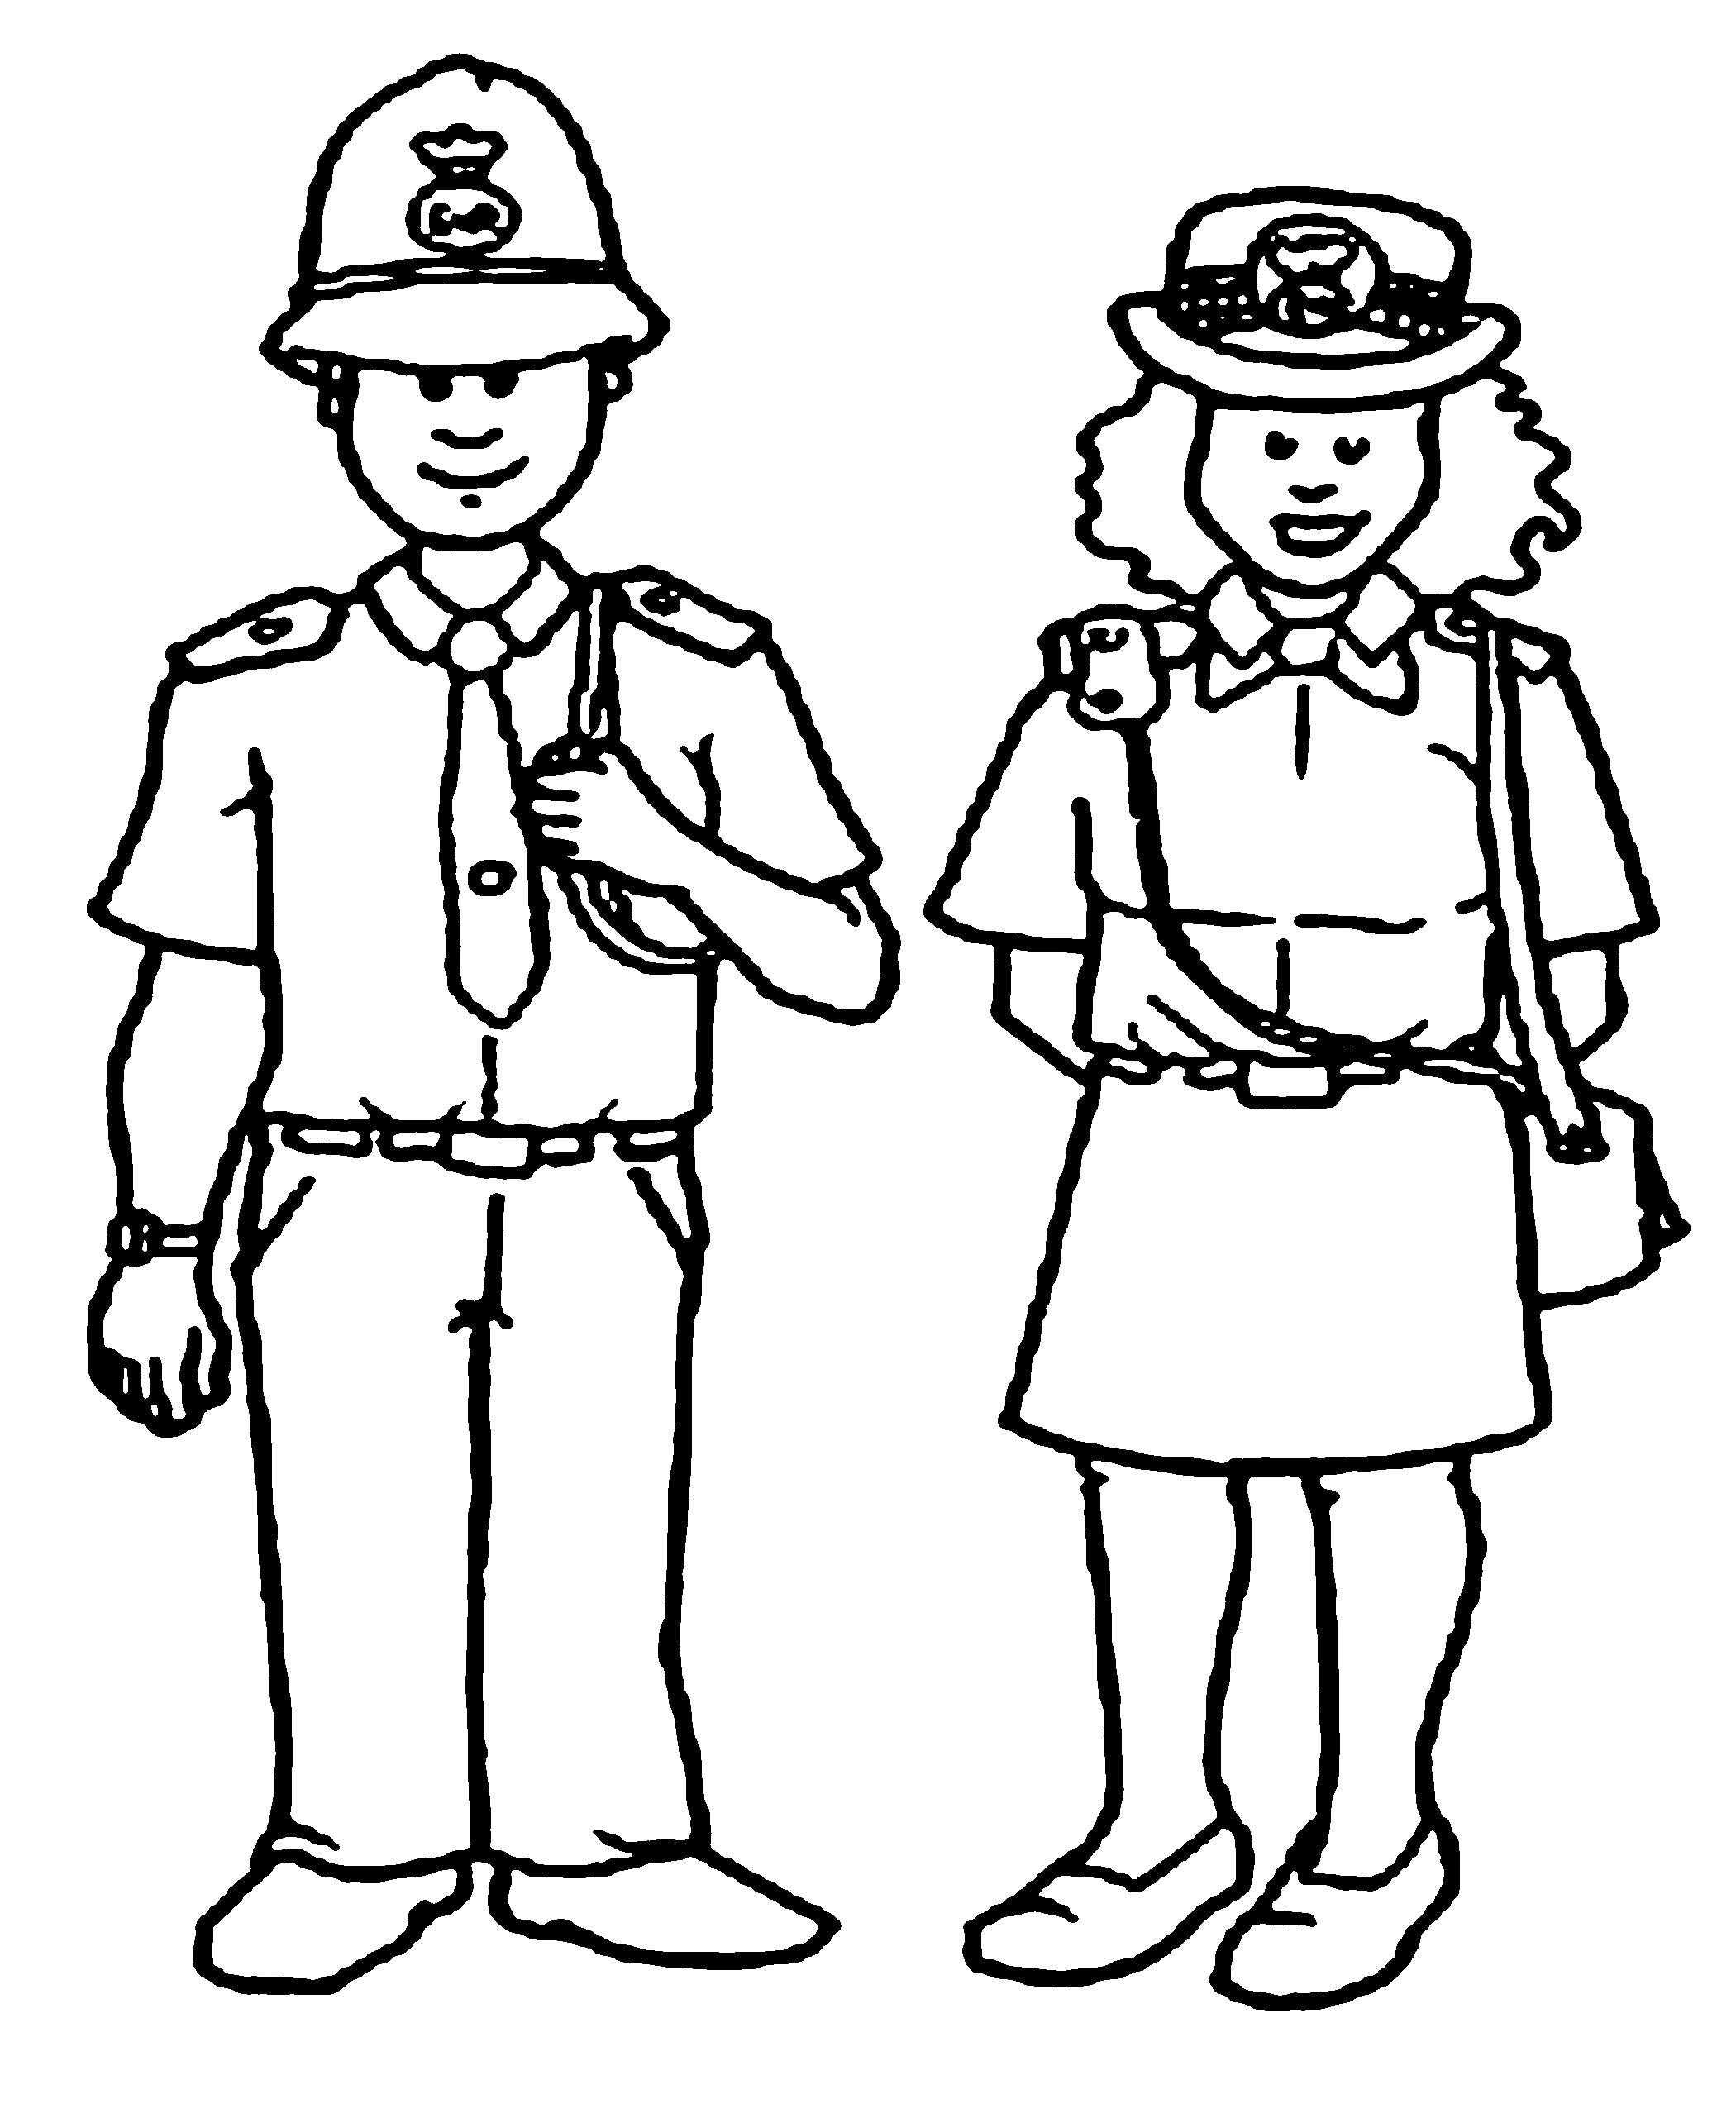 policeman coloring pages kids - photo#32